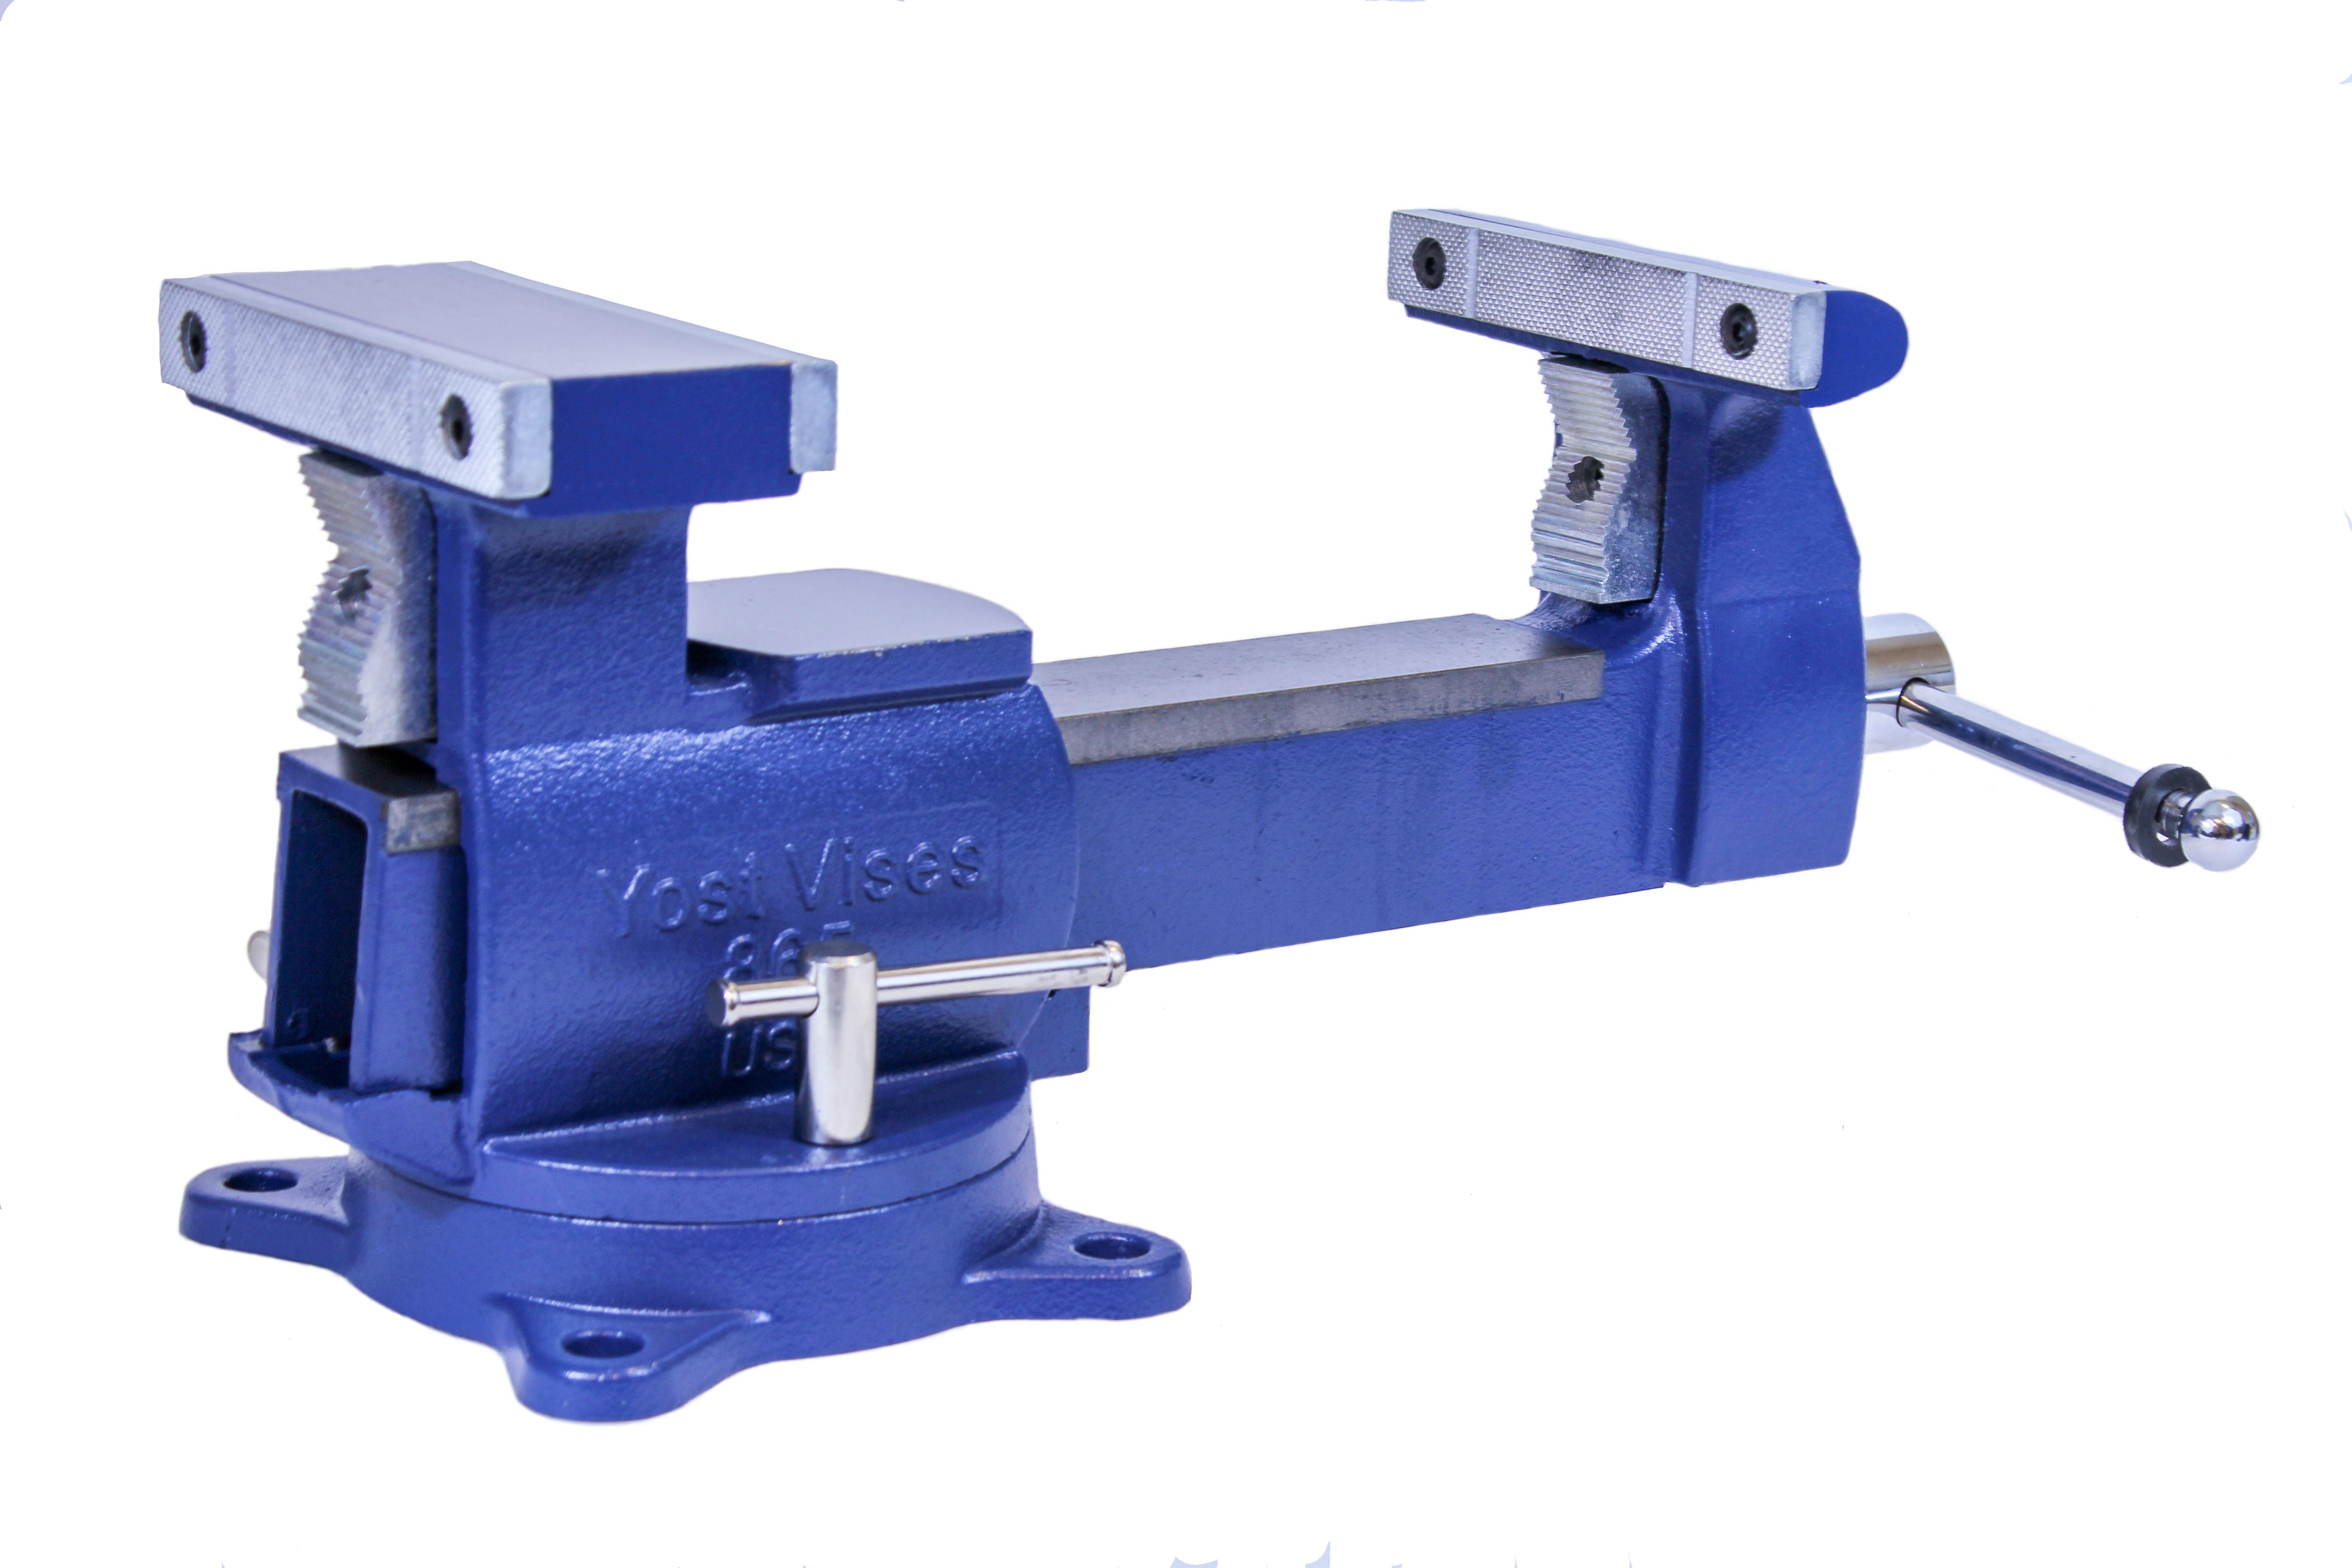 Yost Vises 865 Di 6 5 Heavy Duty Reversible Bench Vise Made In Usa Bench Clamps